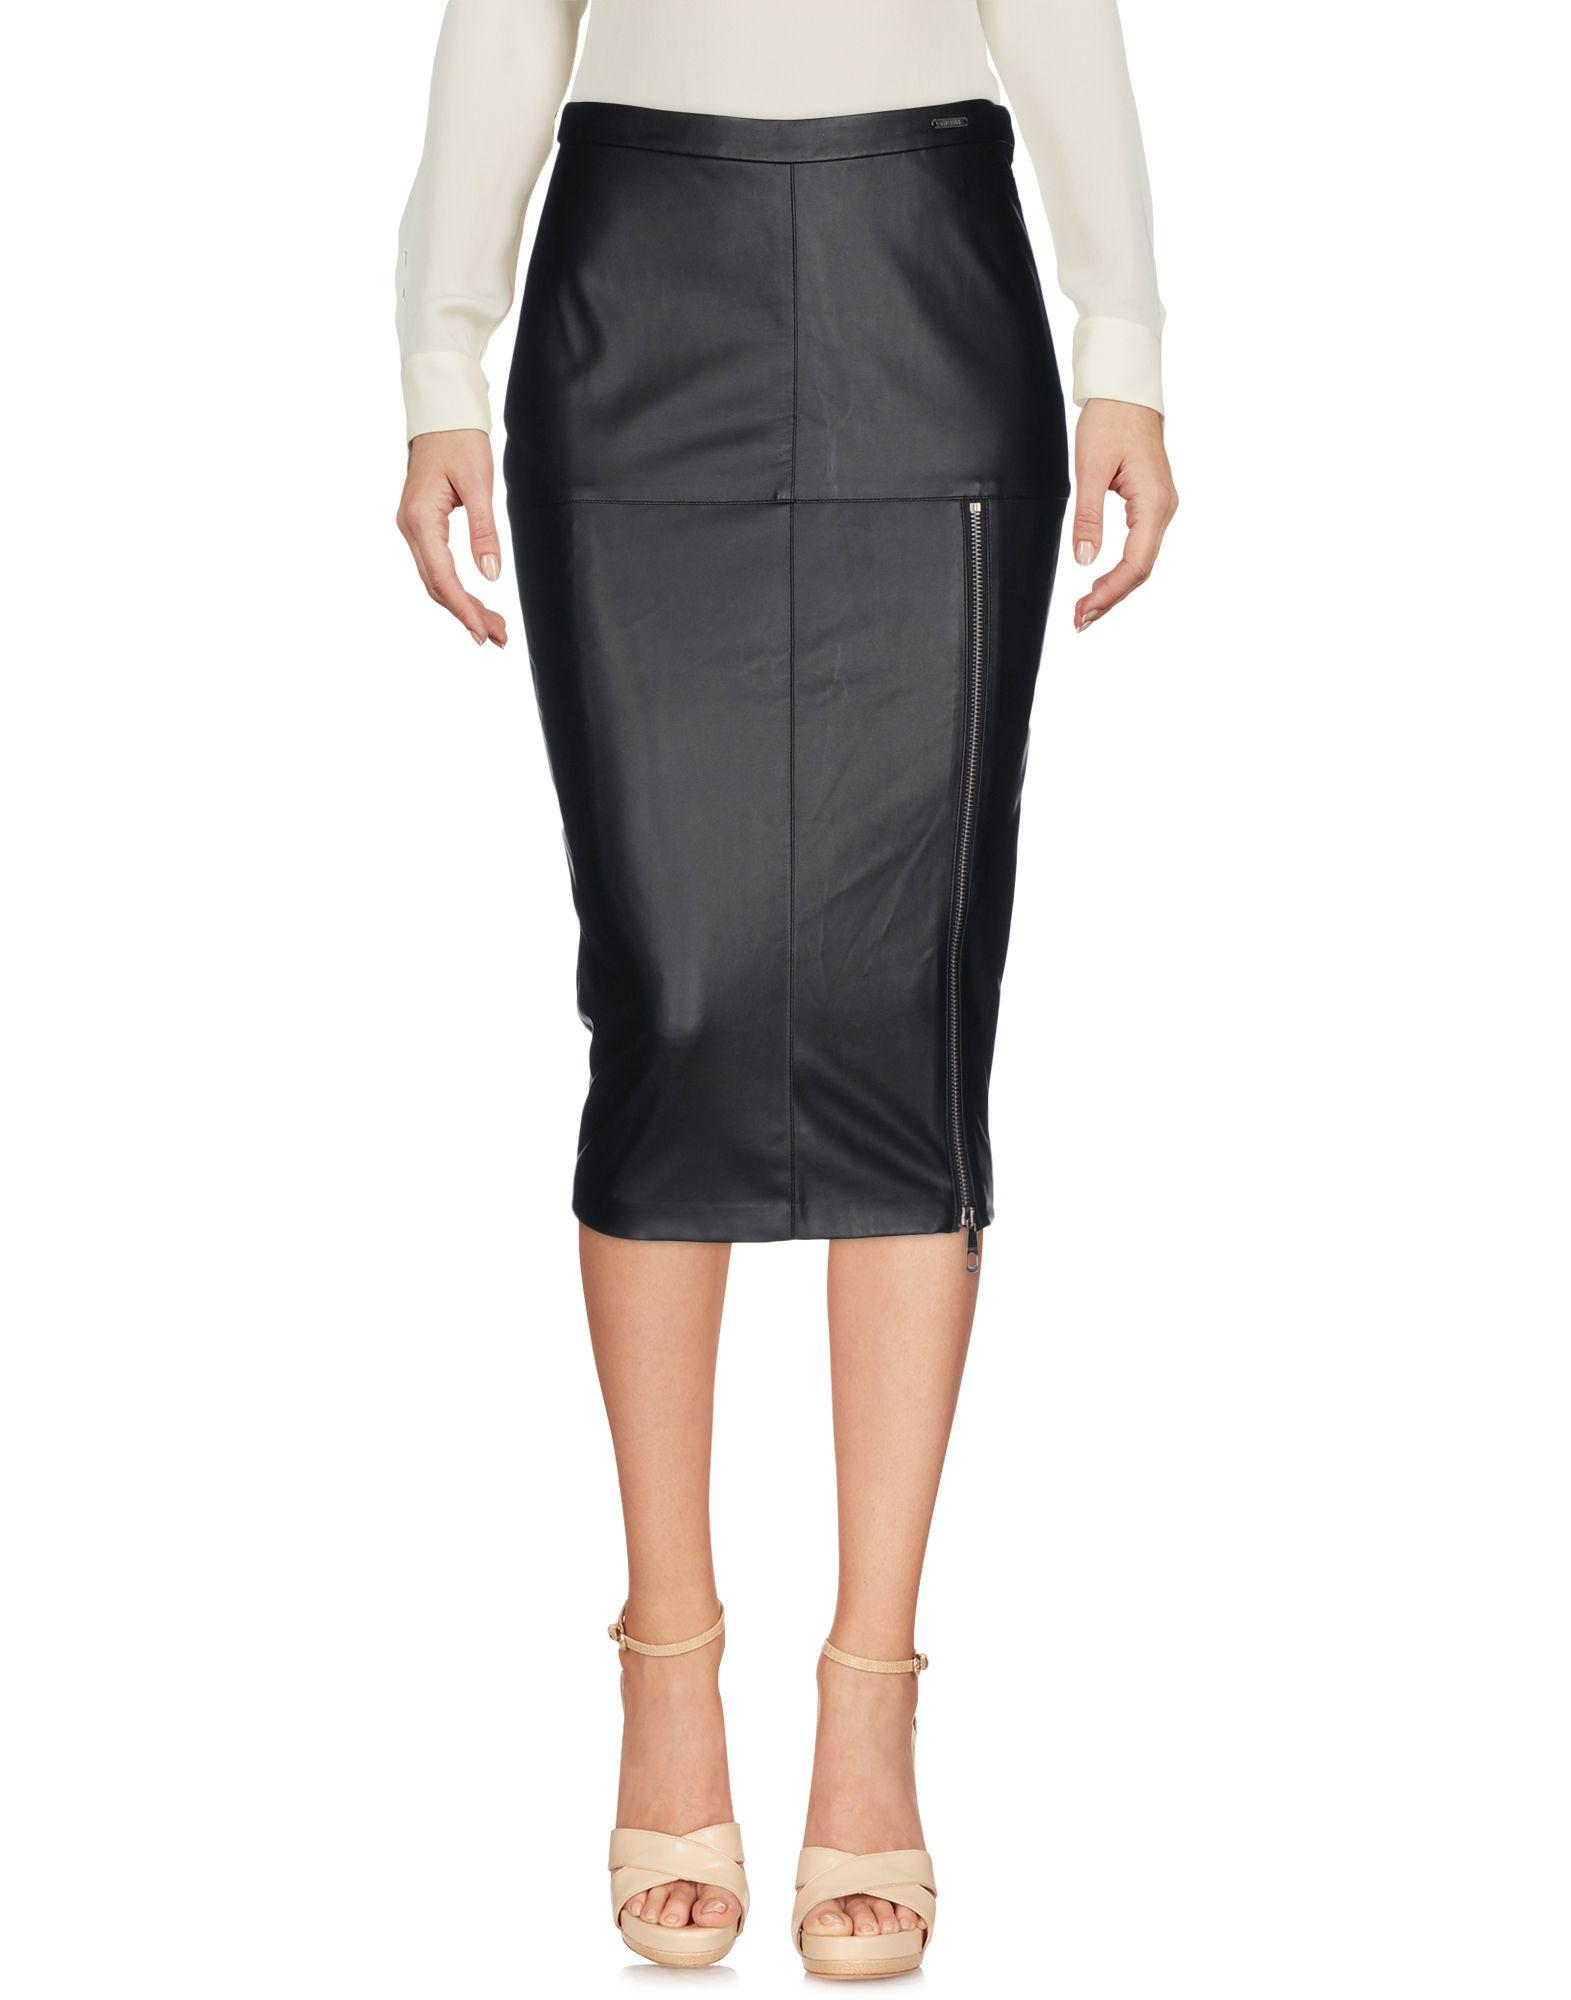 Guess 3/4 Length Skirt In Black